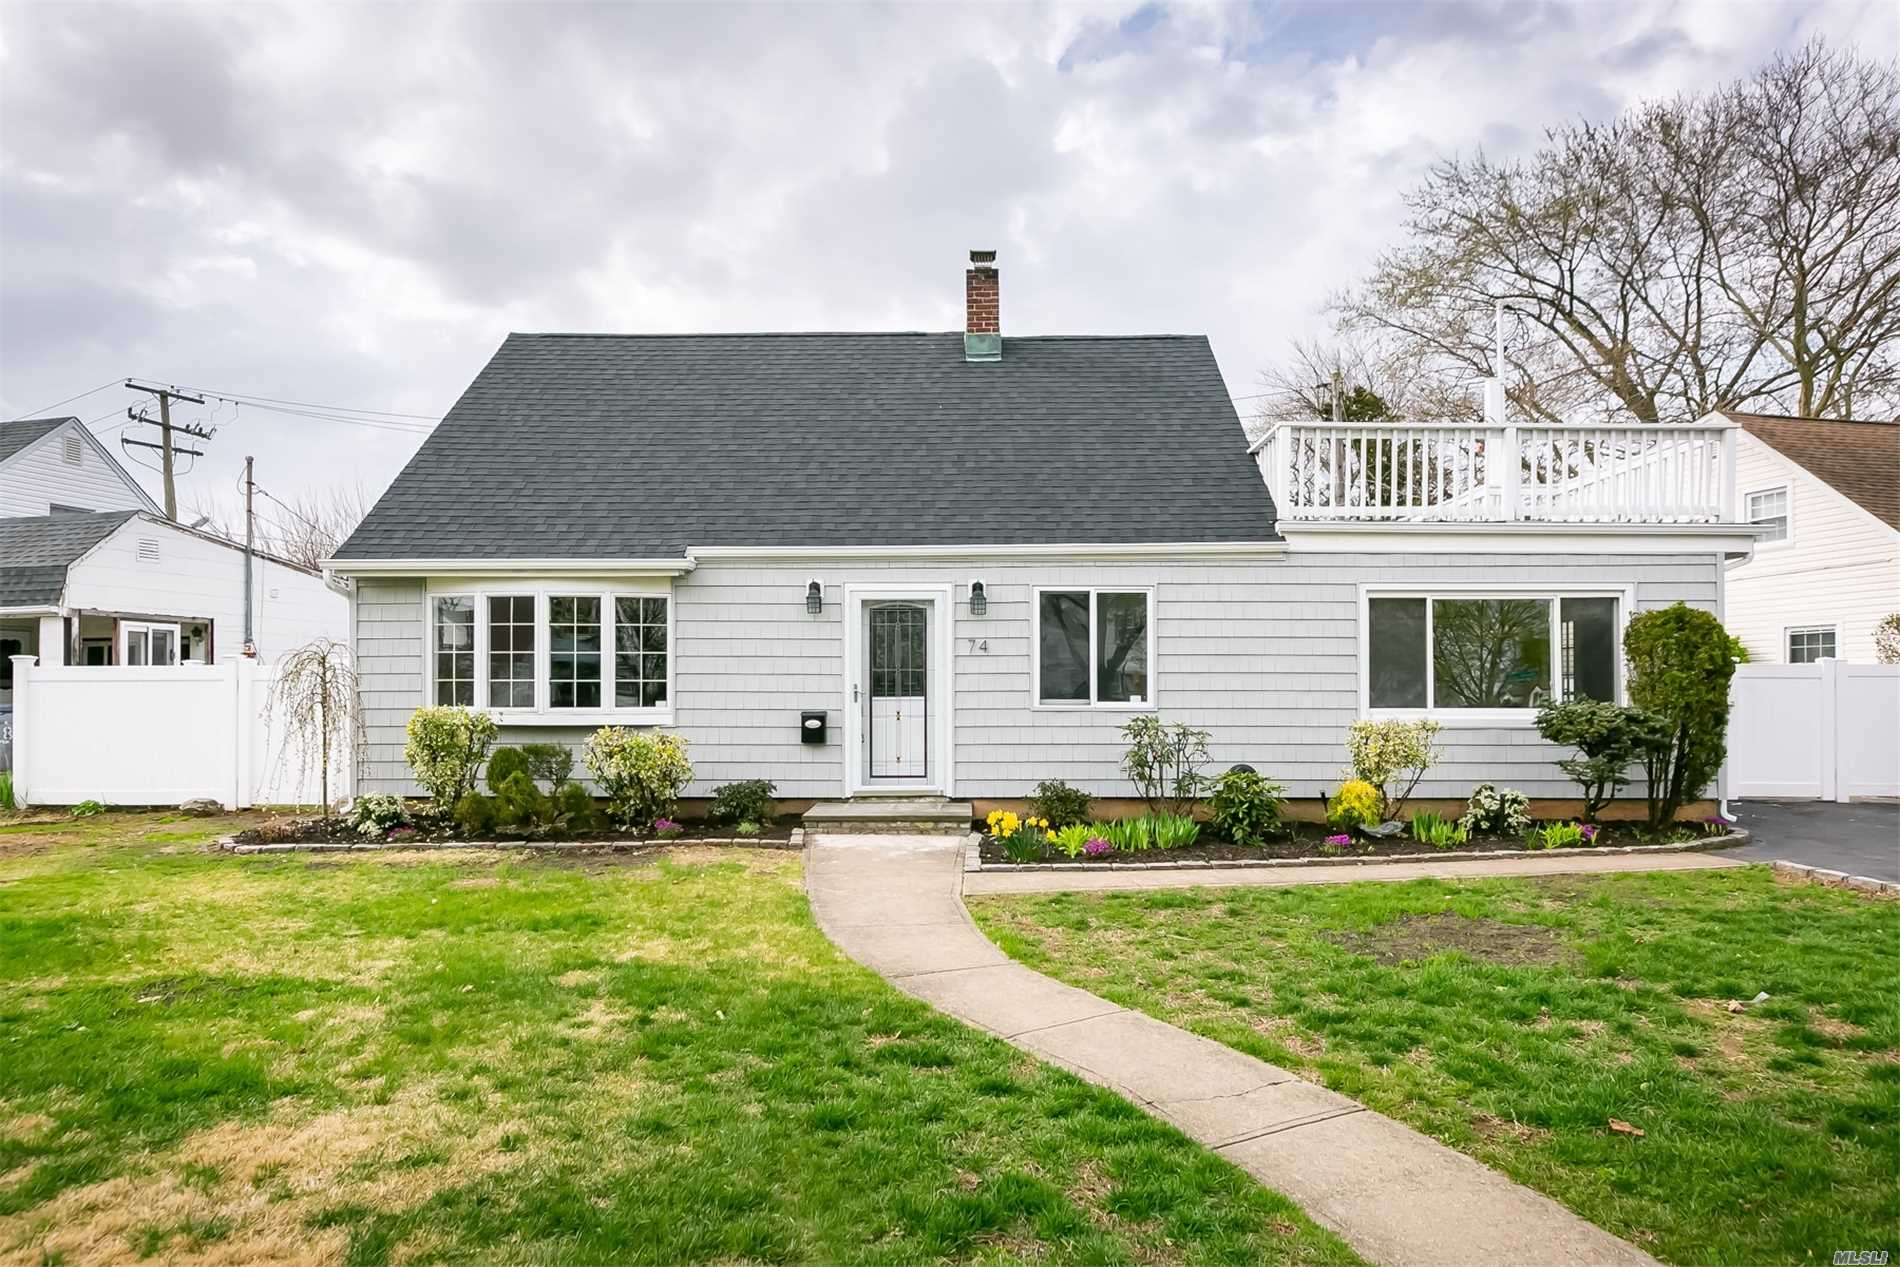 Potential Abounds In This Expanded Levitt Cape Featuring 4 Bedrooms, 3 Baths, Formal Dining Room On Lovely Mid-Block Location. Pvc Fence, Paver Patio And Roof Top Deck.  Roof, Siding & Windows 10 Years Young; 200 Amps Service; Salk/Macarthur Schools, Close To Shopping, Restaurants And Parkways.